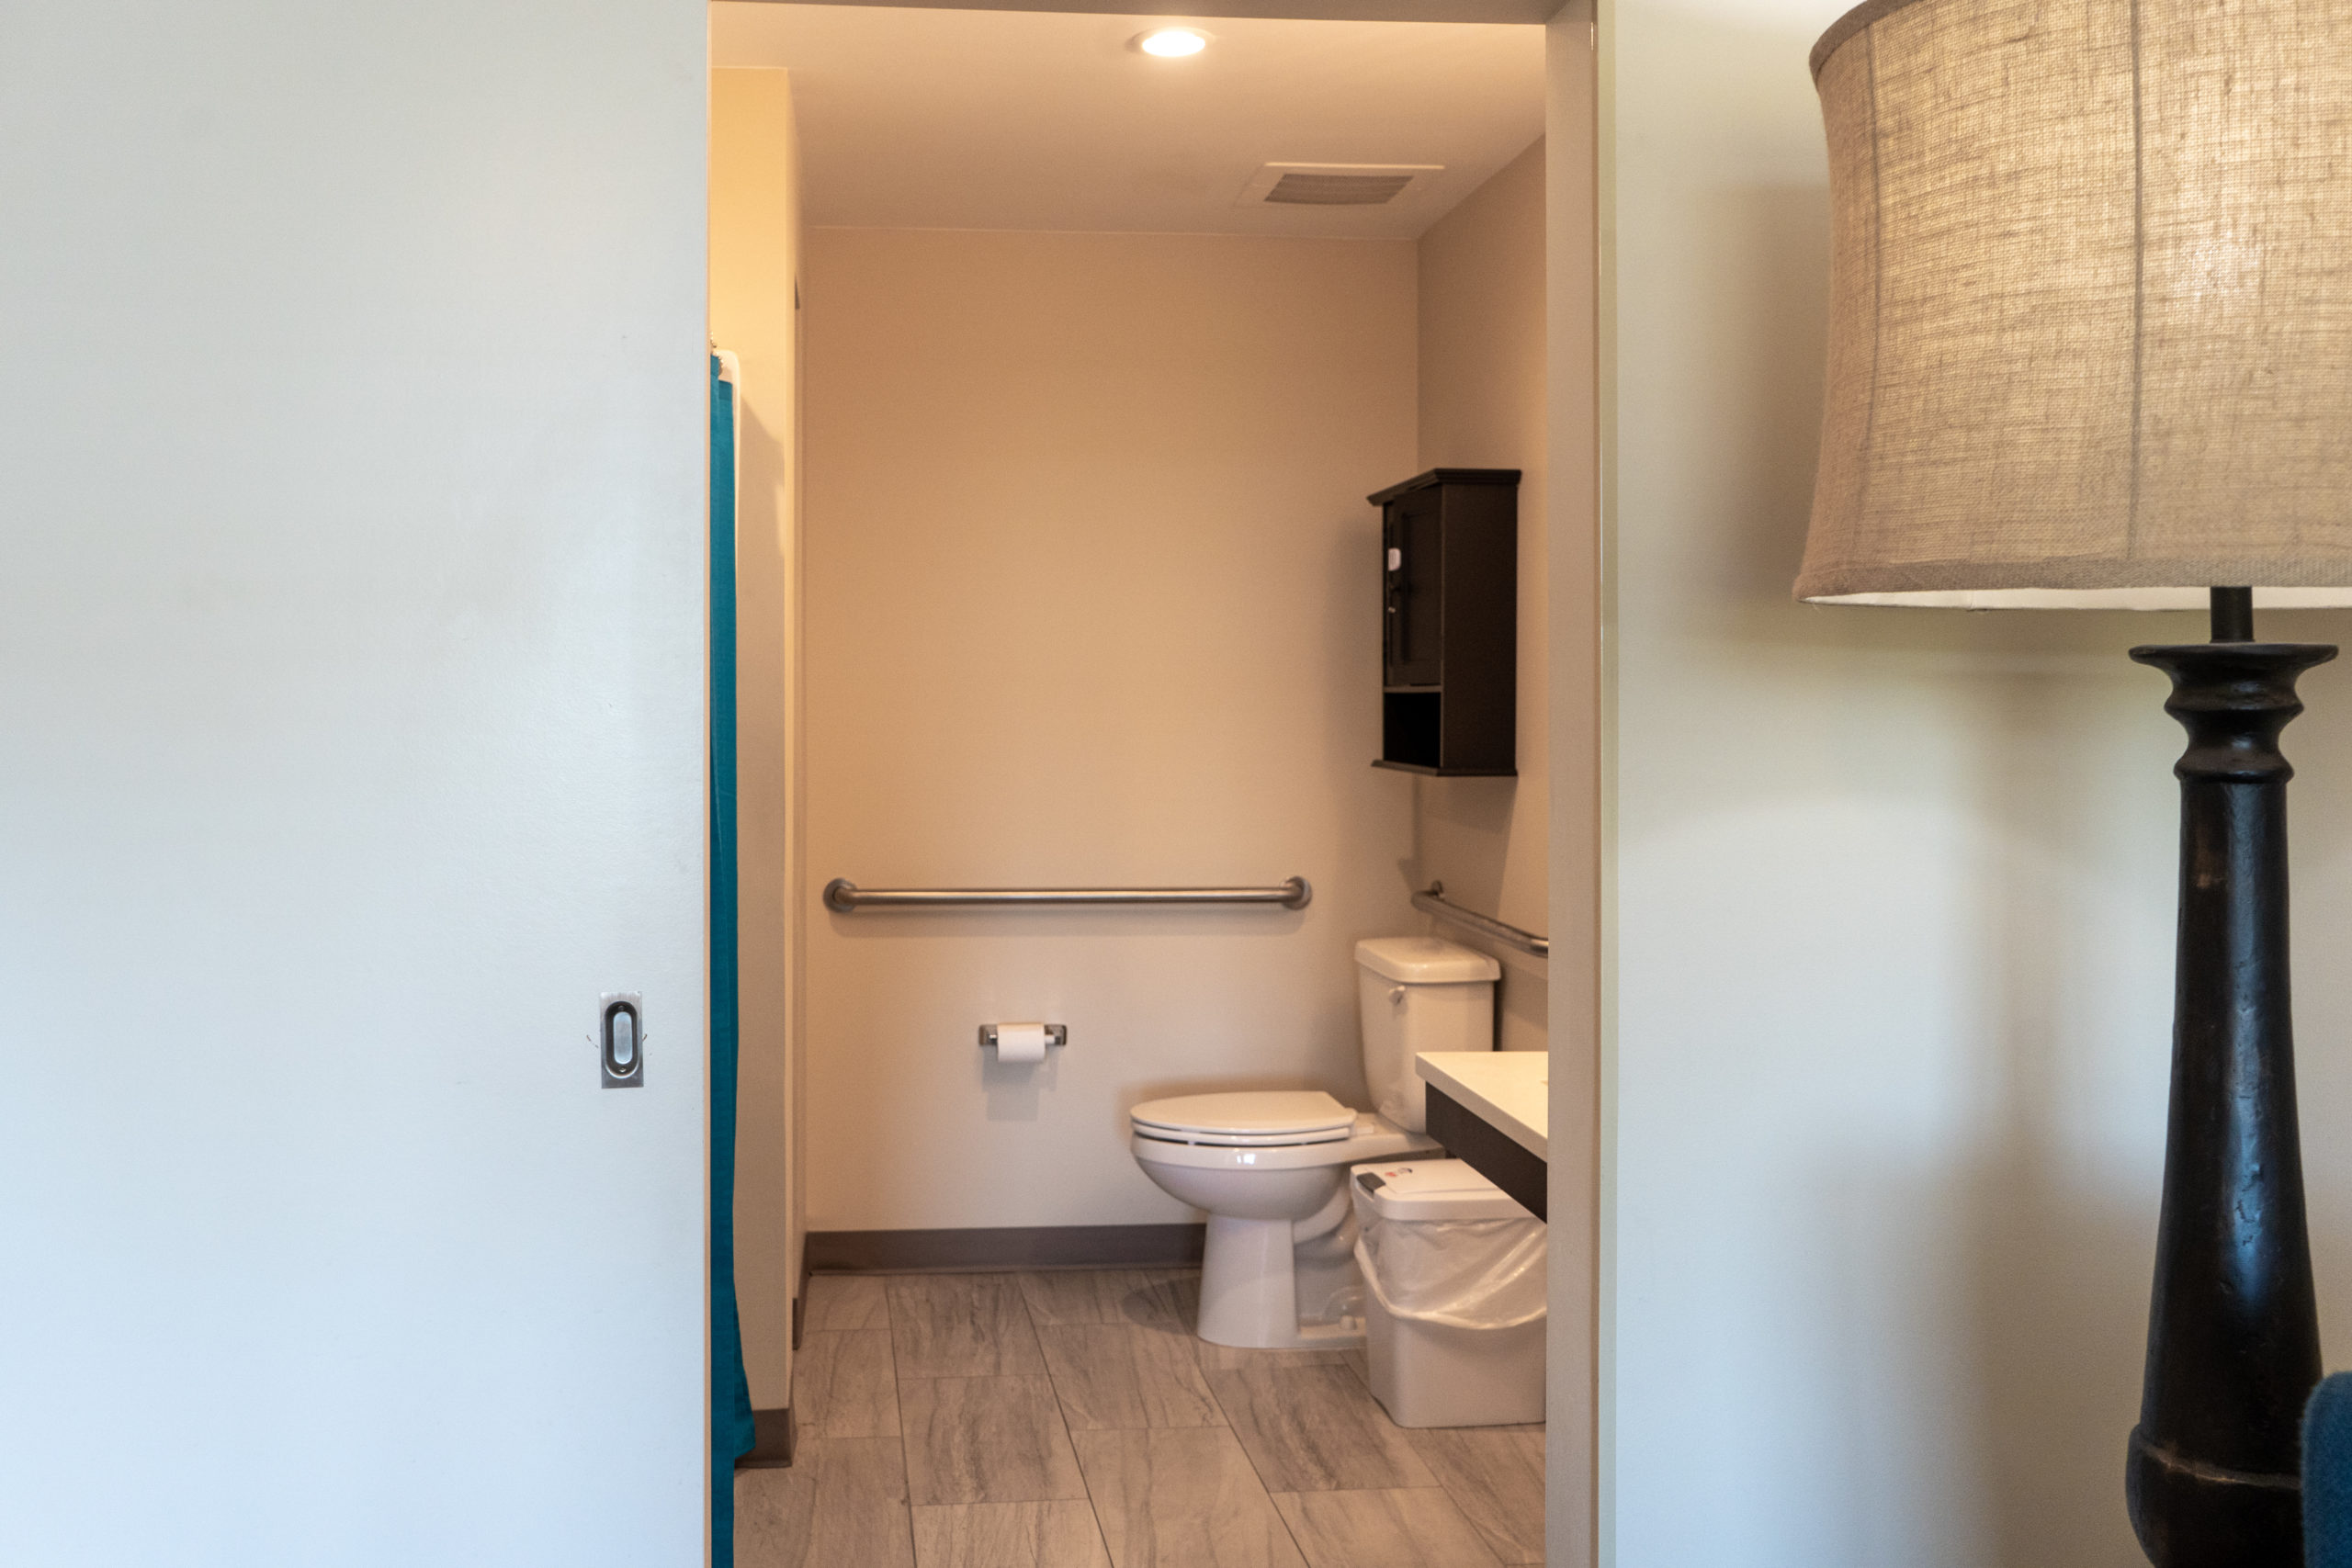 Private bathroom with toilet, sink and safety walk-in shower